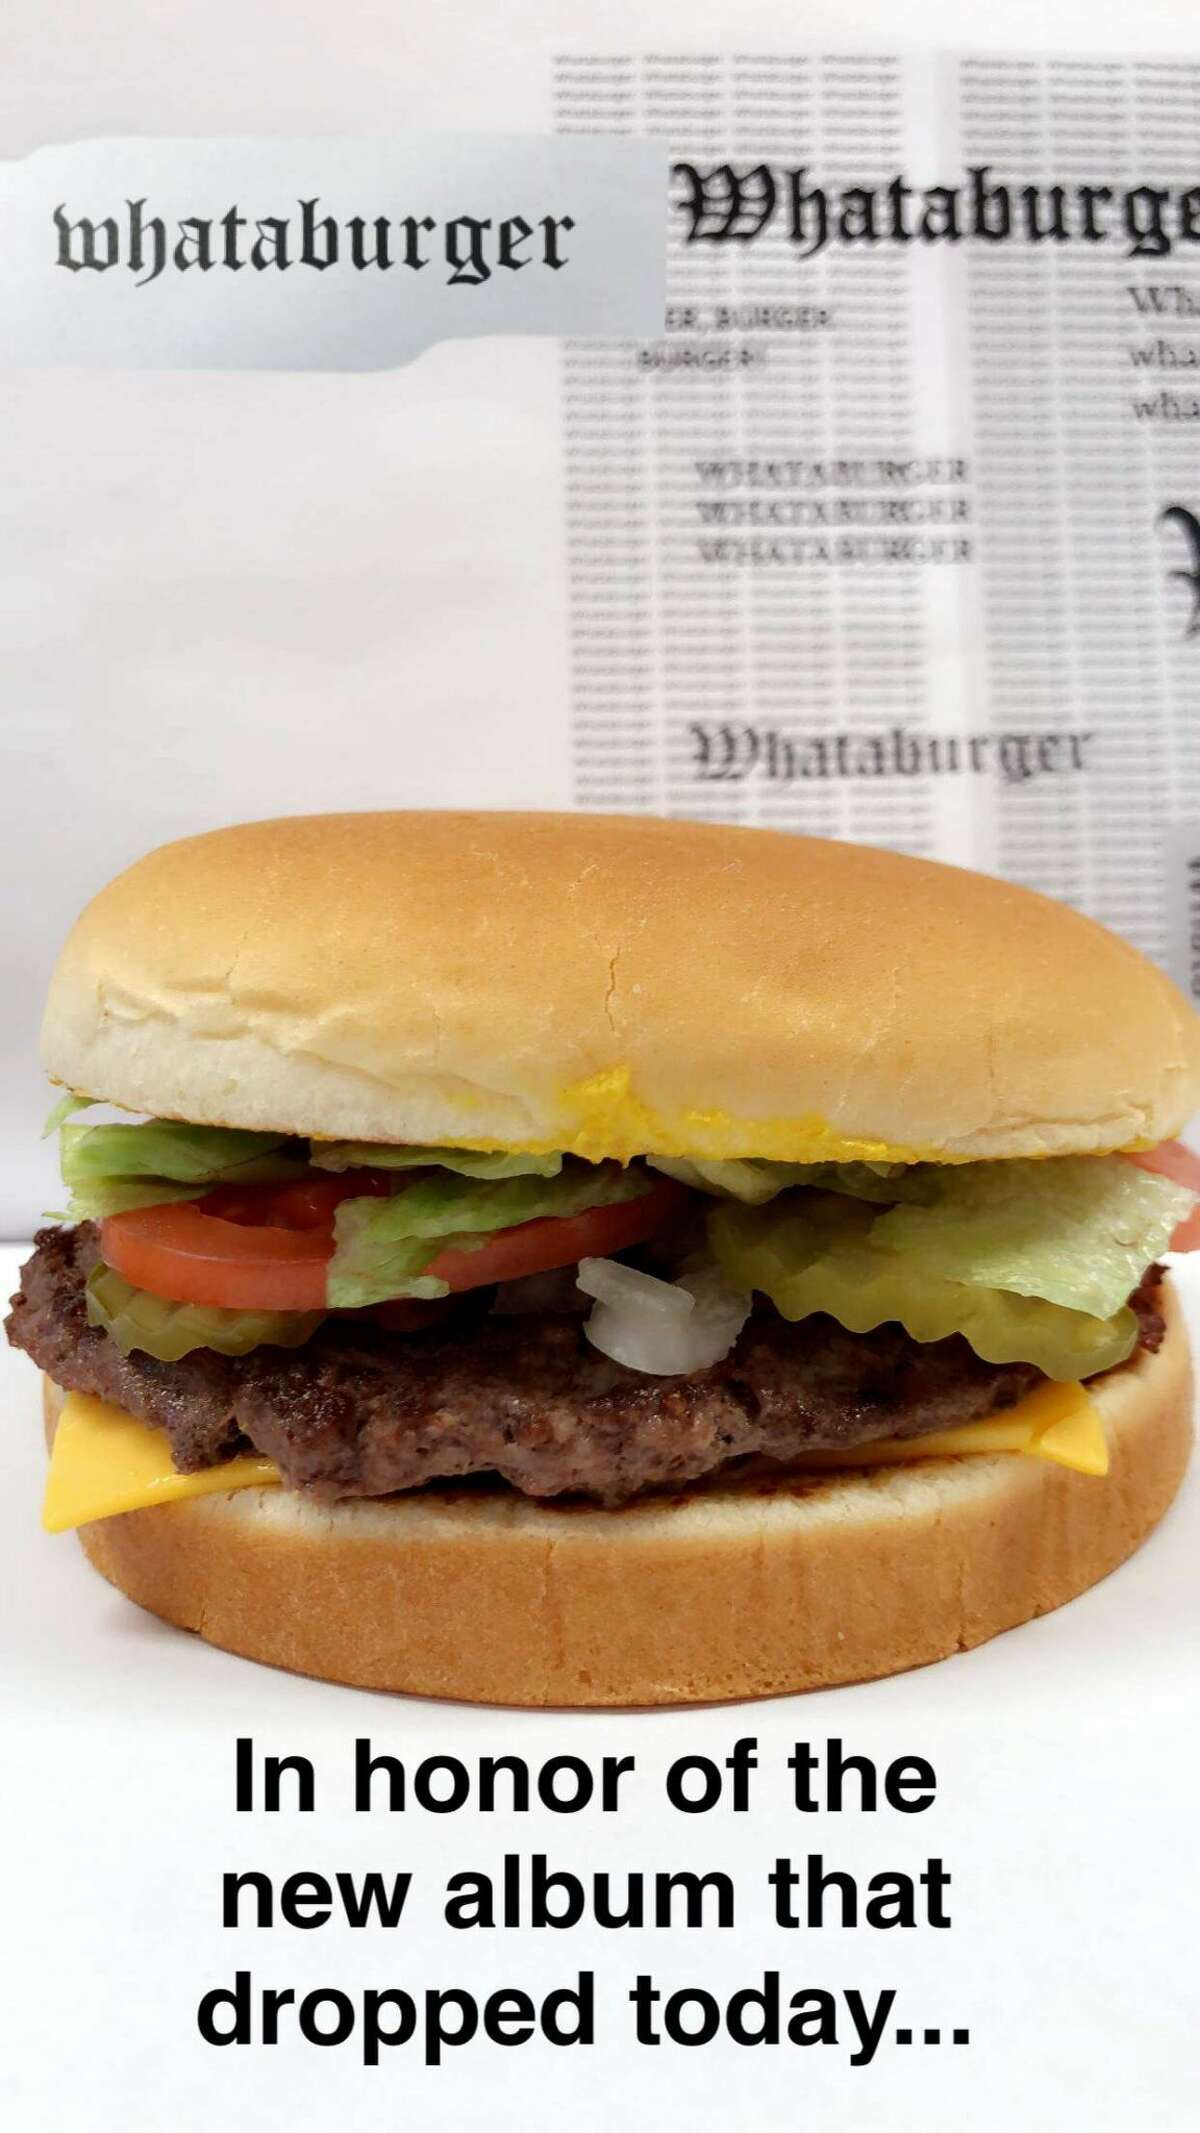 Whataburger channeled their inner Taylor Swift in honor of her dropping her new